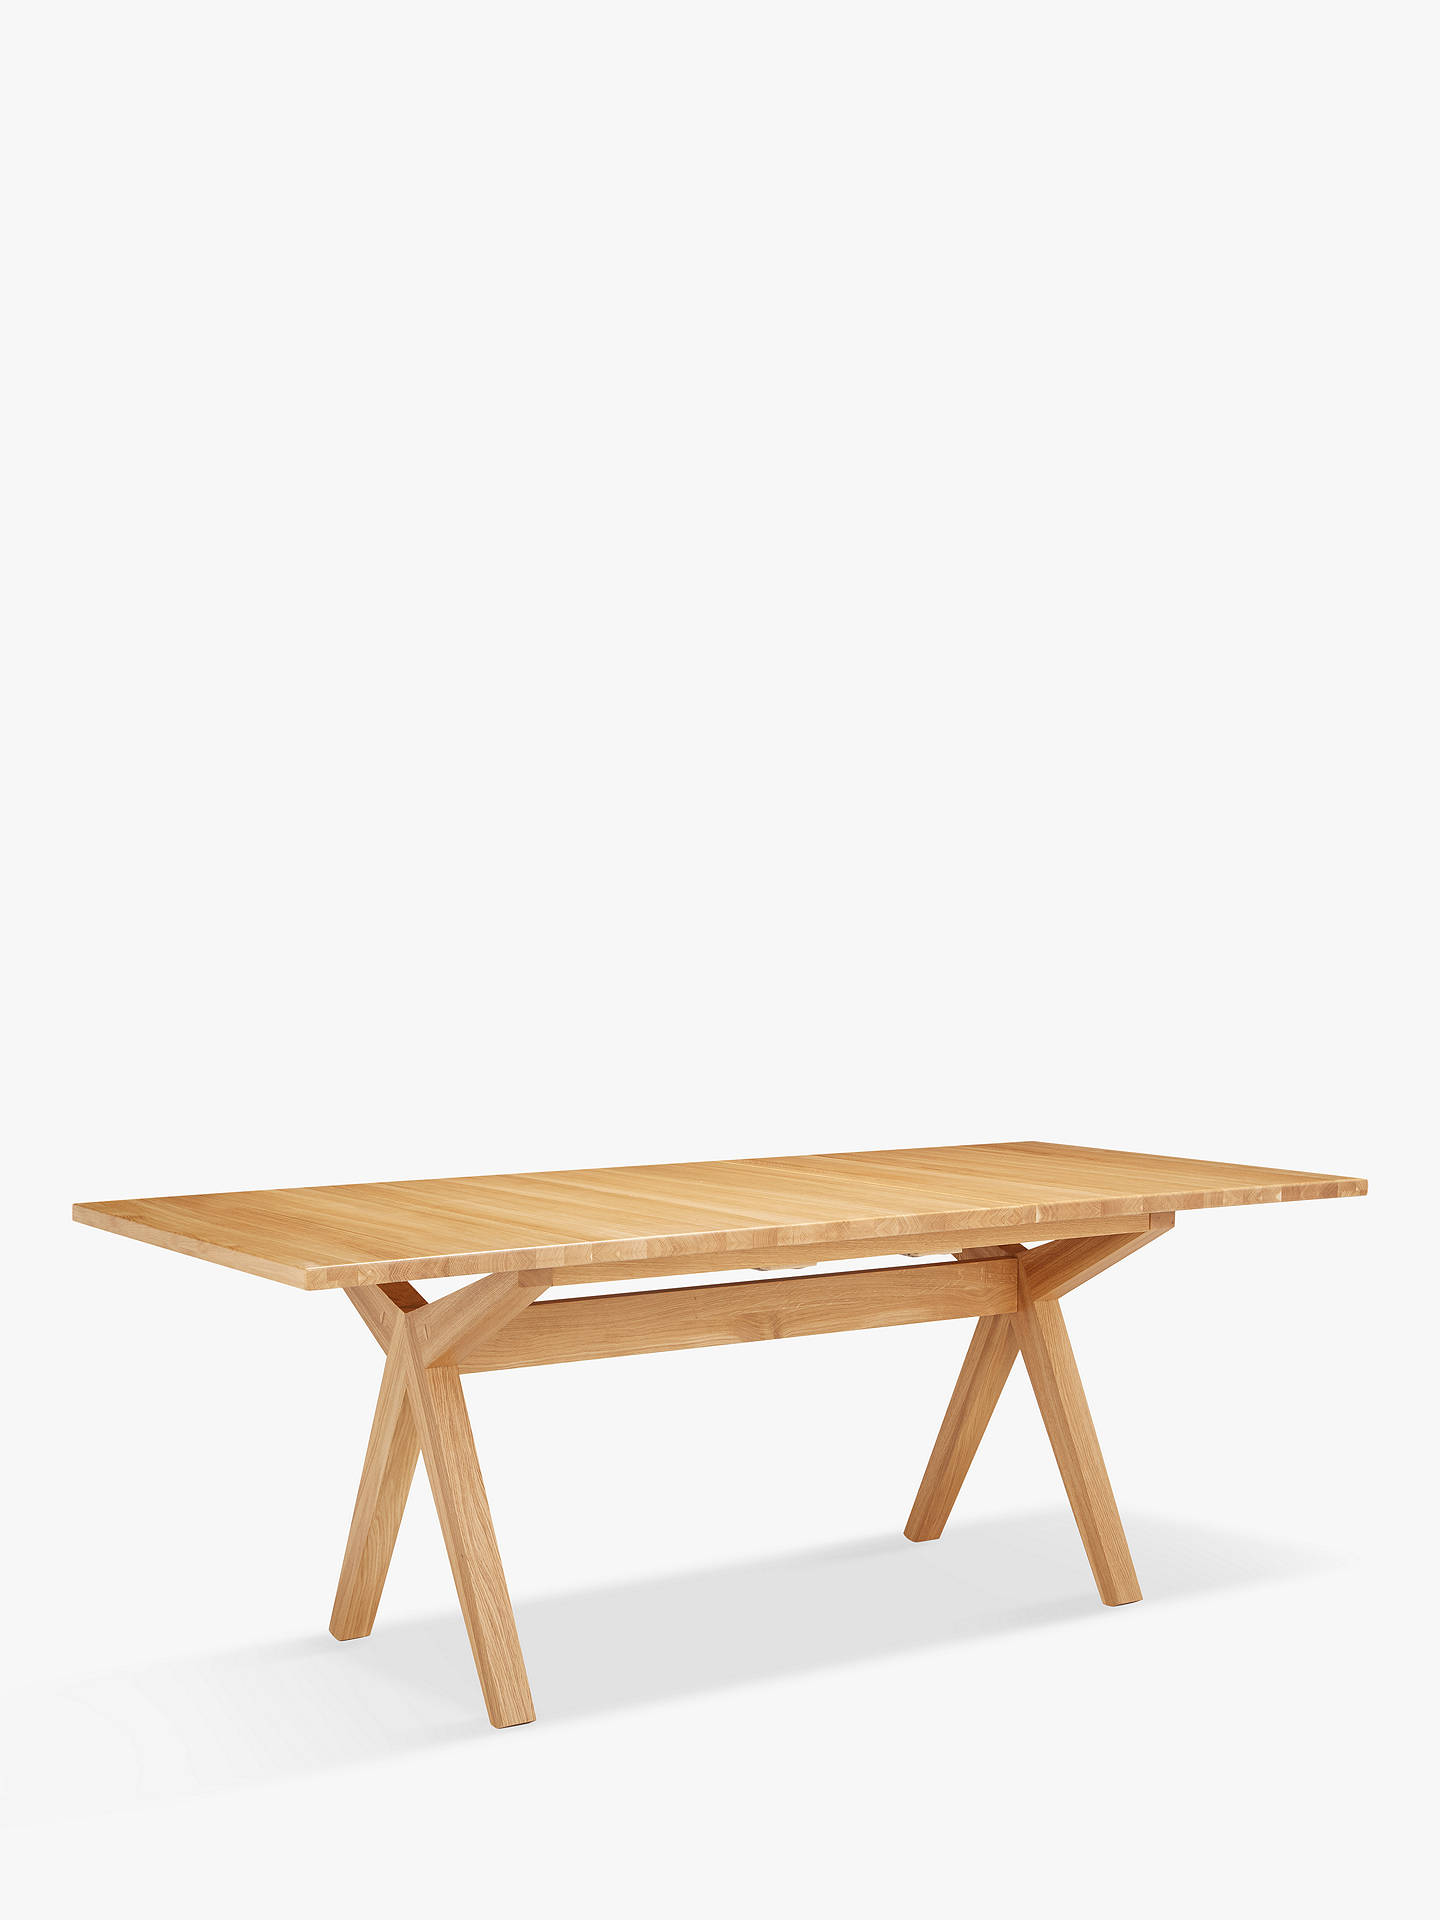 BuyBethan Gray for John Lewis Newman 6-8 Seater Extending Dining Table Online at johnlewis.com